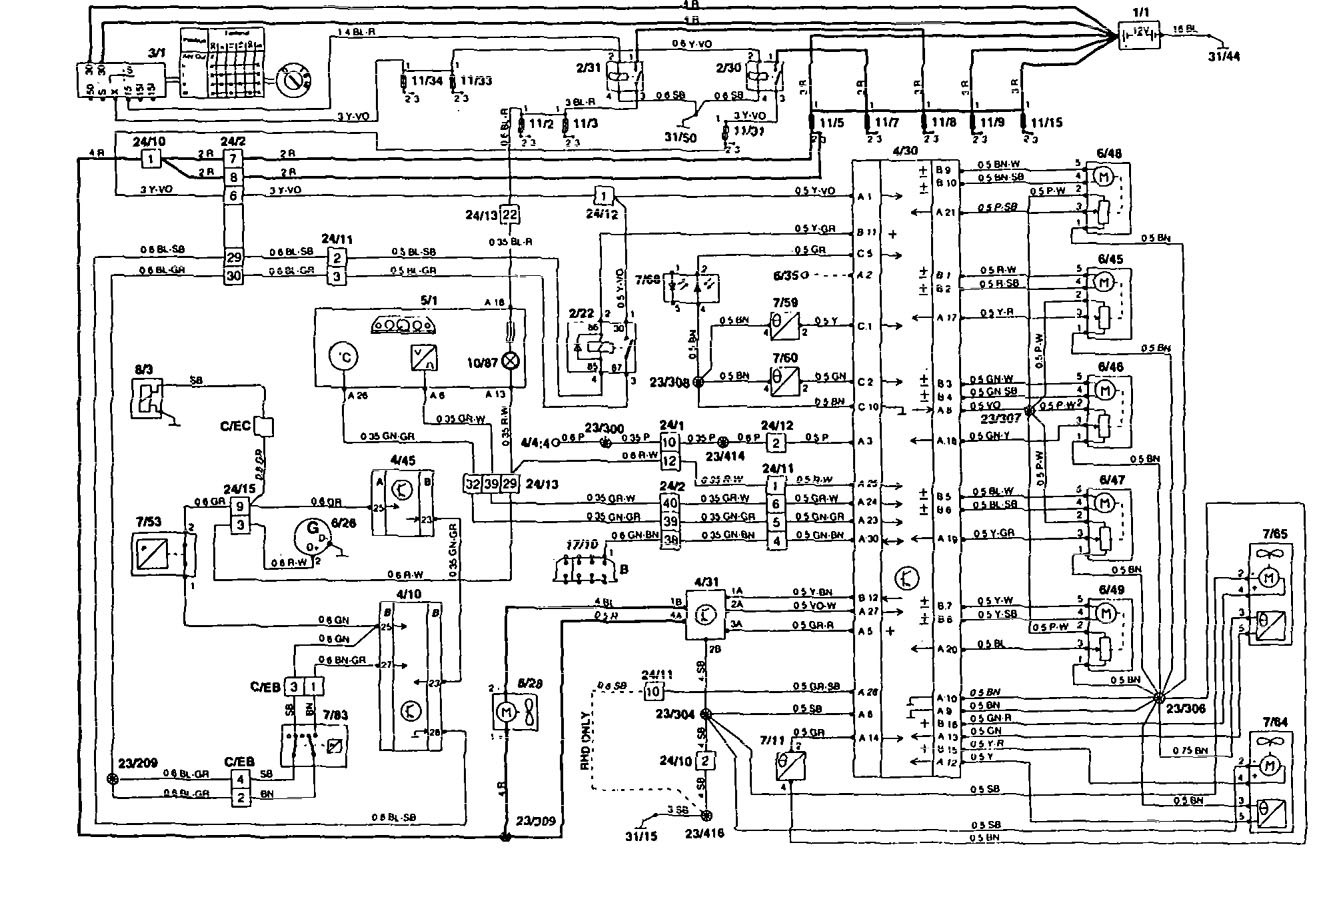 volvo 850 wiring diagram hvac controls 1 1995 volvo 850 (1995) wiring diagrams hvac controls carknowledge volvo 850 wiring diagram at edmiracle.co